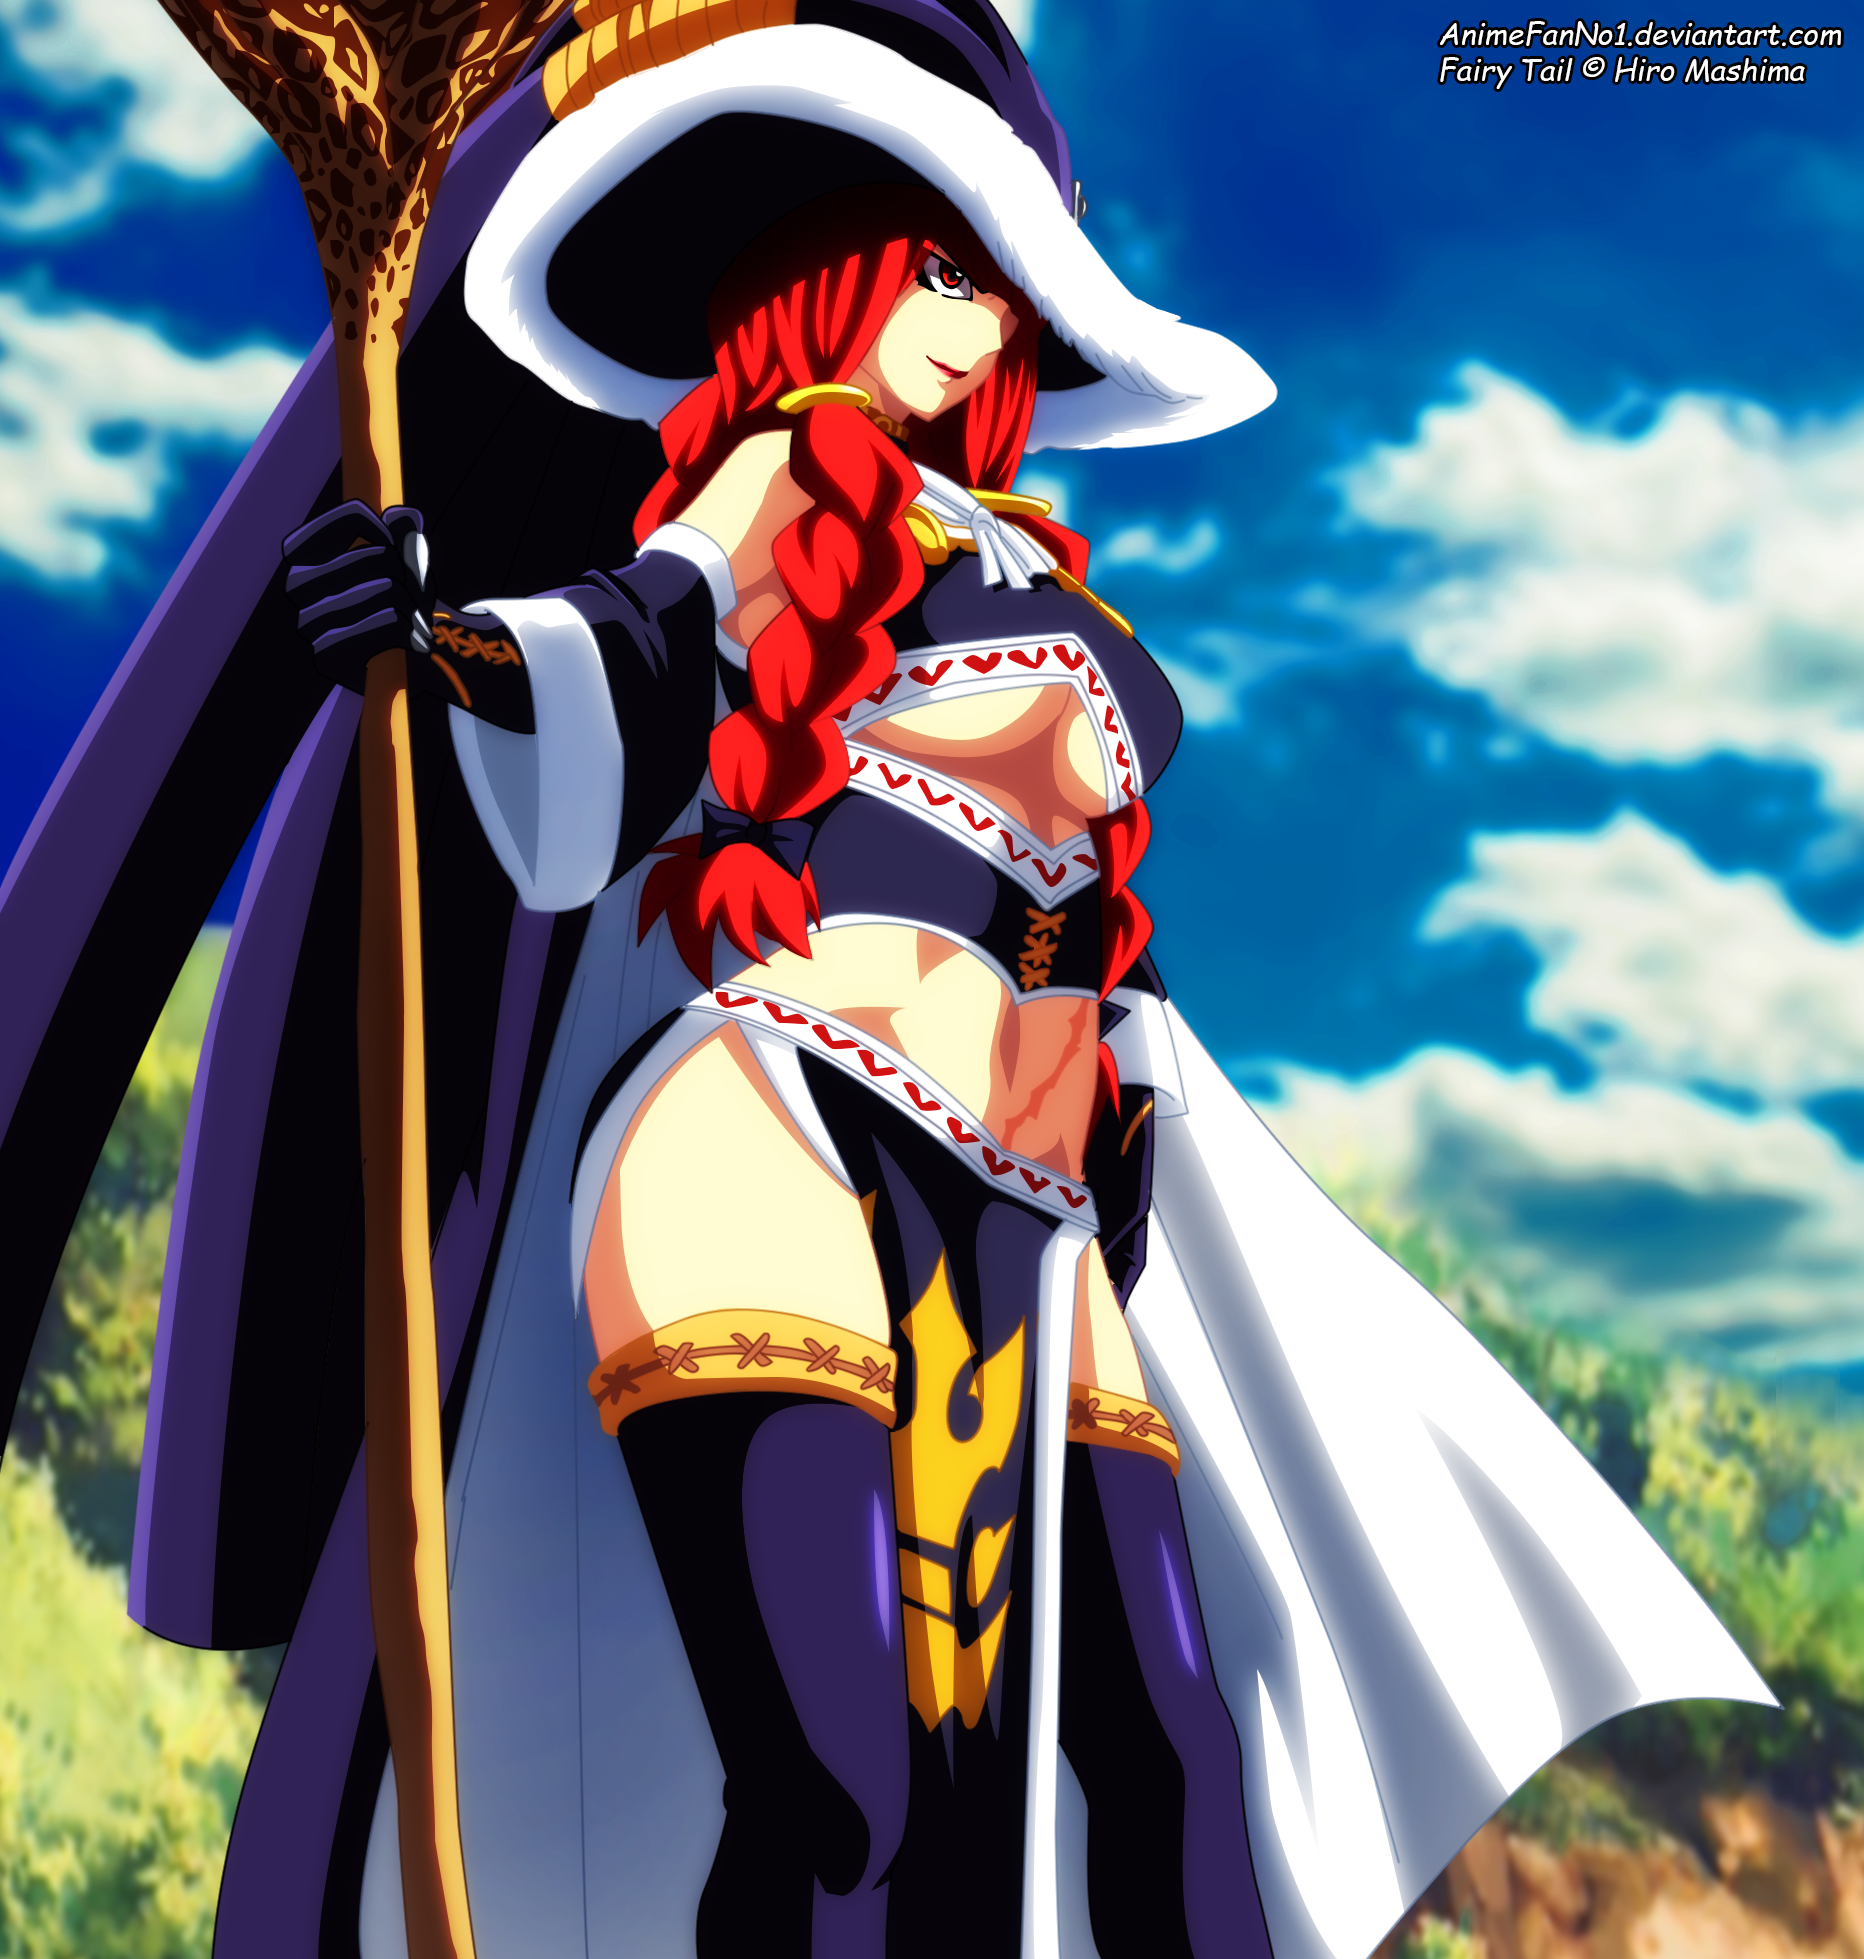 fairy tail eileen confronts erza by animefanno1 on